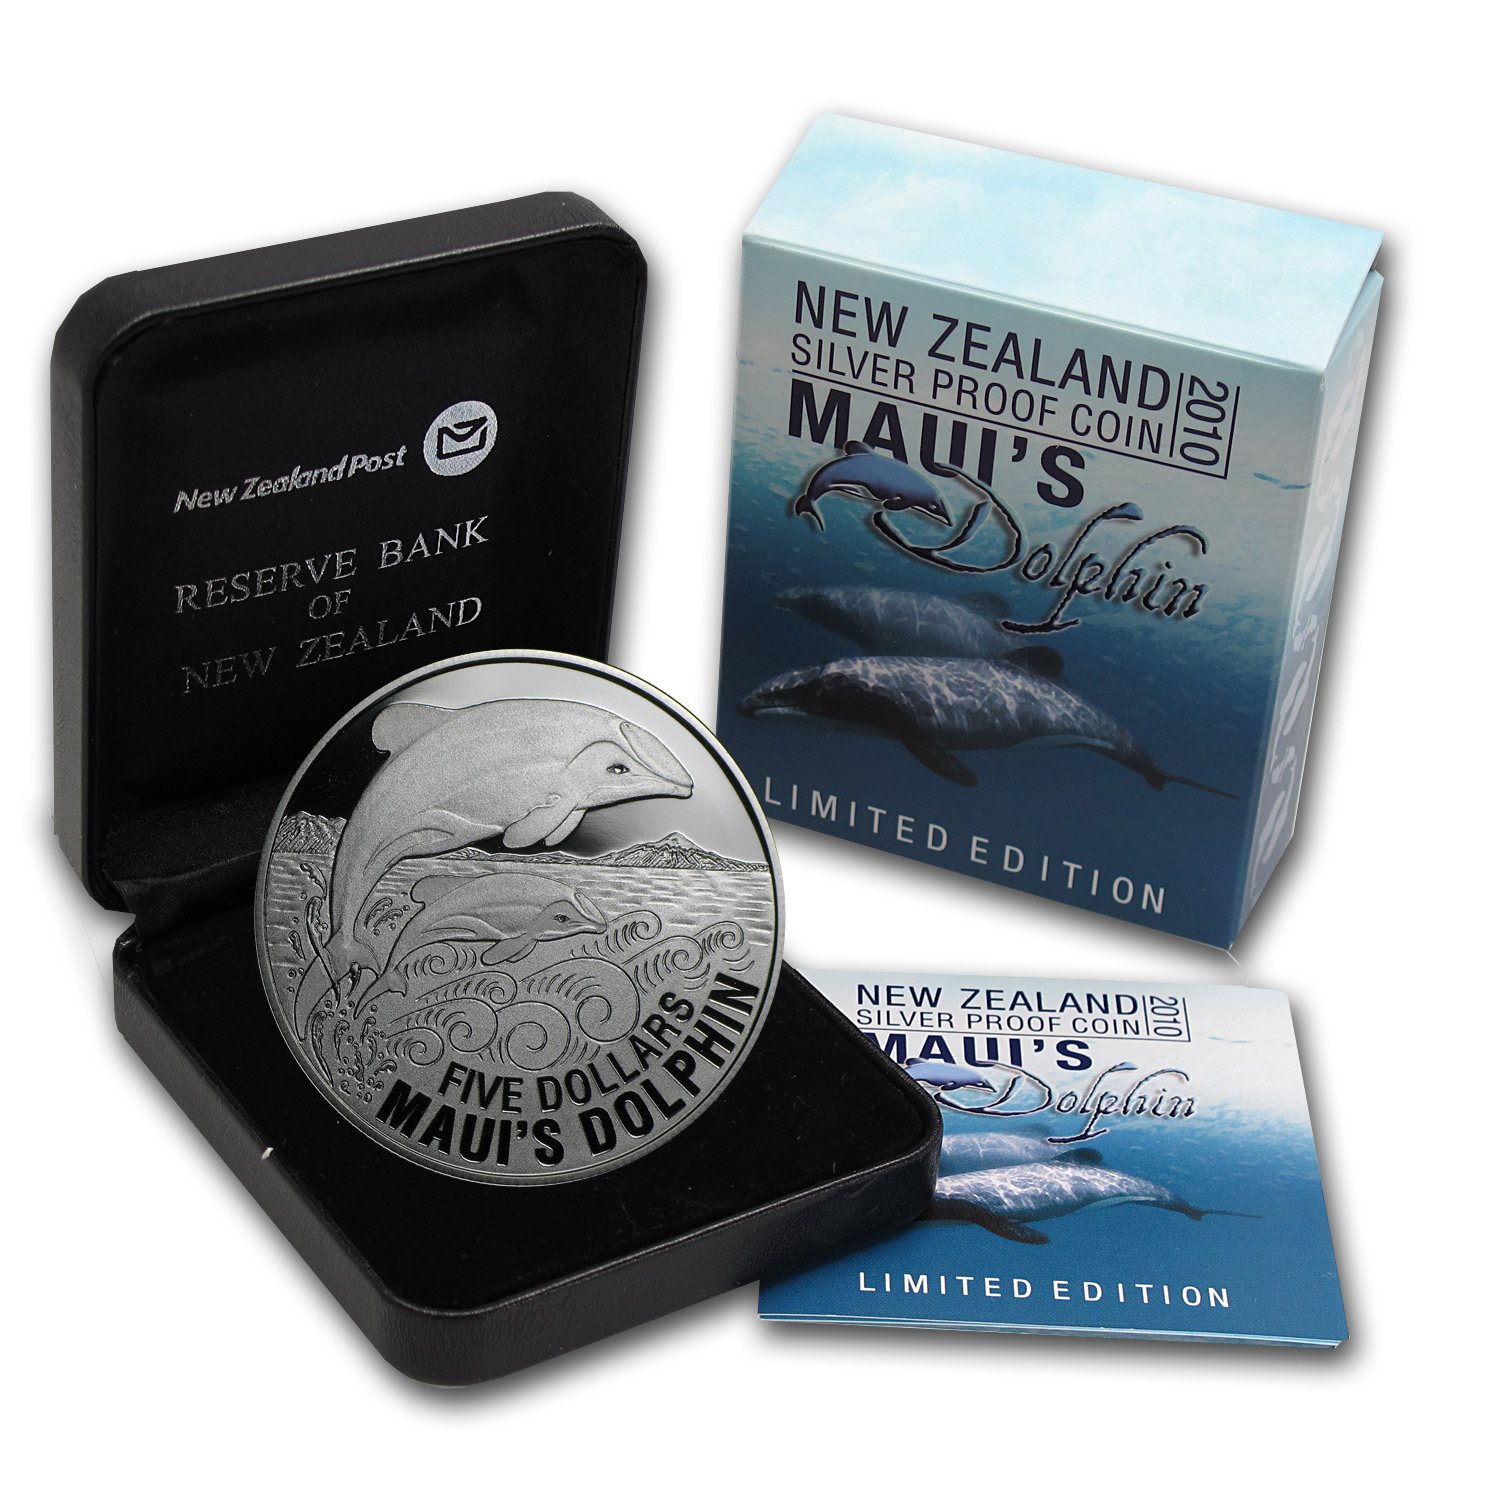 2010 1 oz Silver New Zealand $5 - Maui's Dolphin Proof Coin